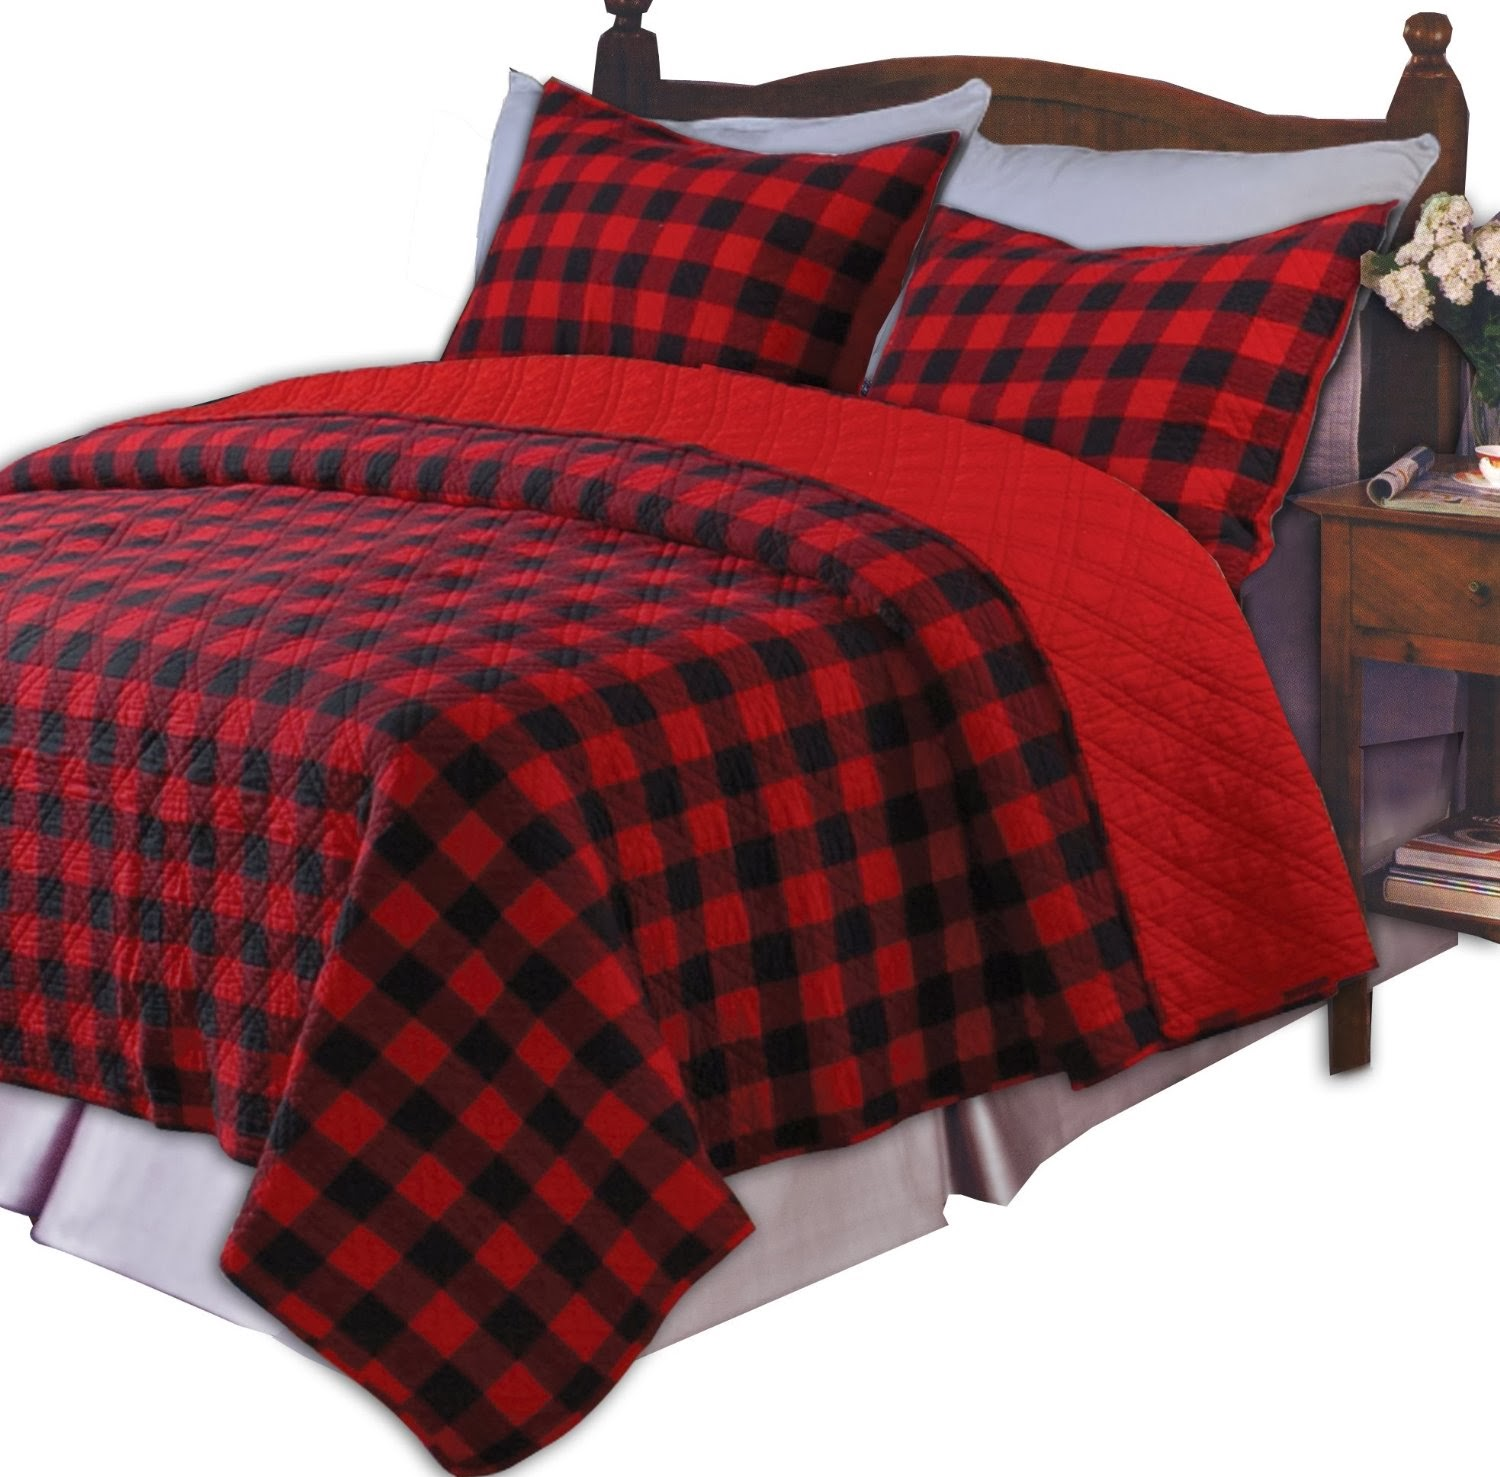 Cool plaid comforter with rugs and wooden floor plus headboard and sidetable also pillows